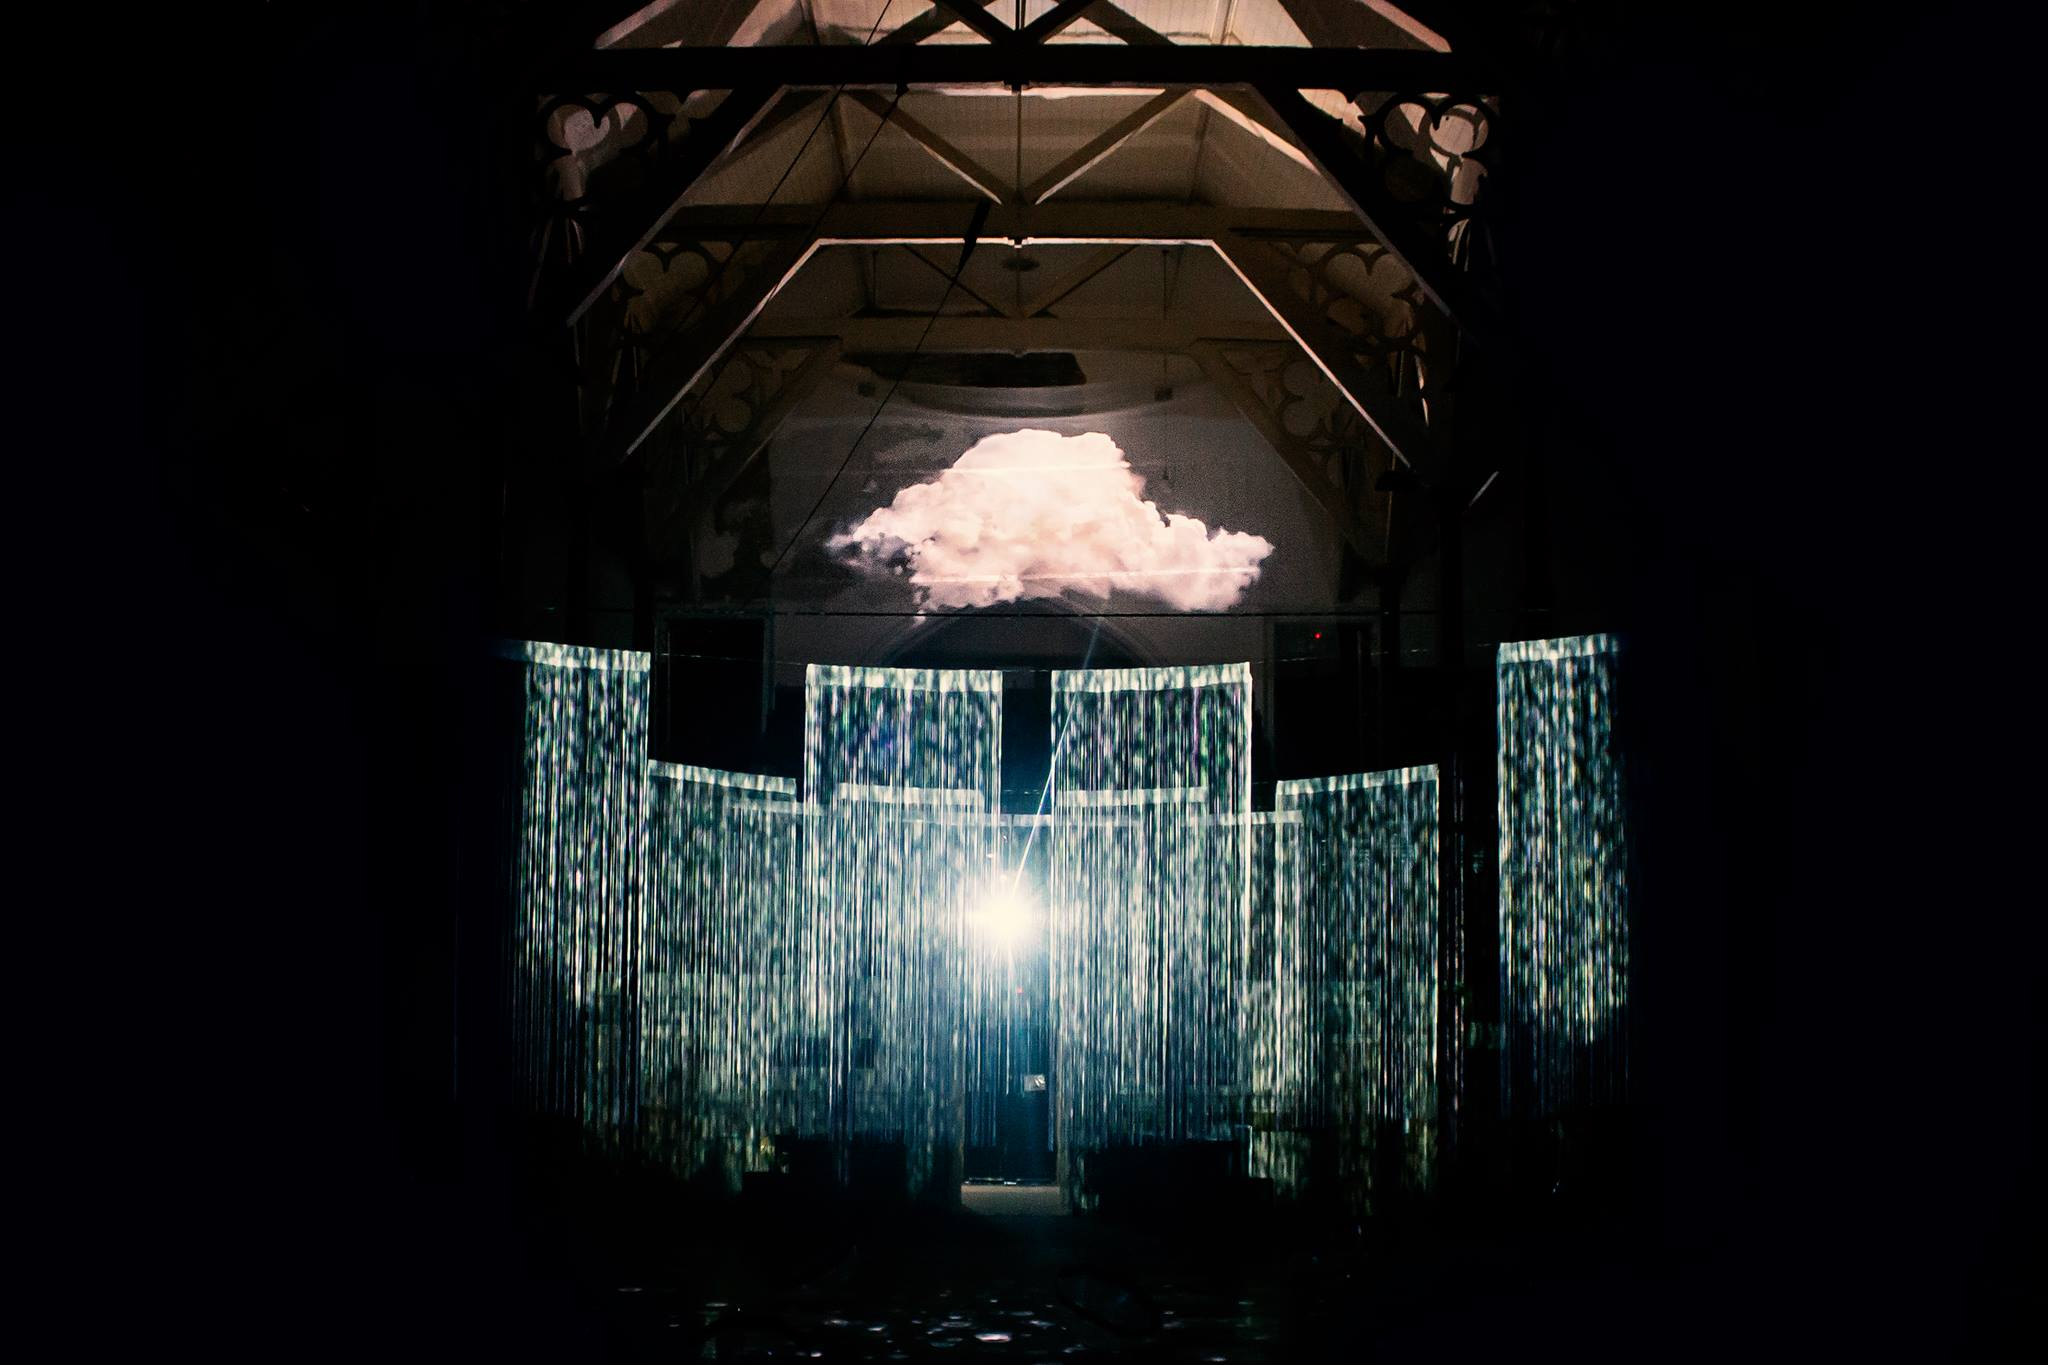 Lighting installation with a cloud and sheets of rain/light